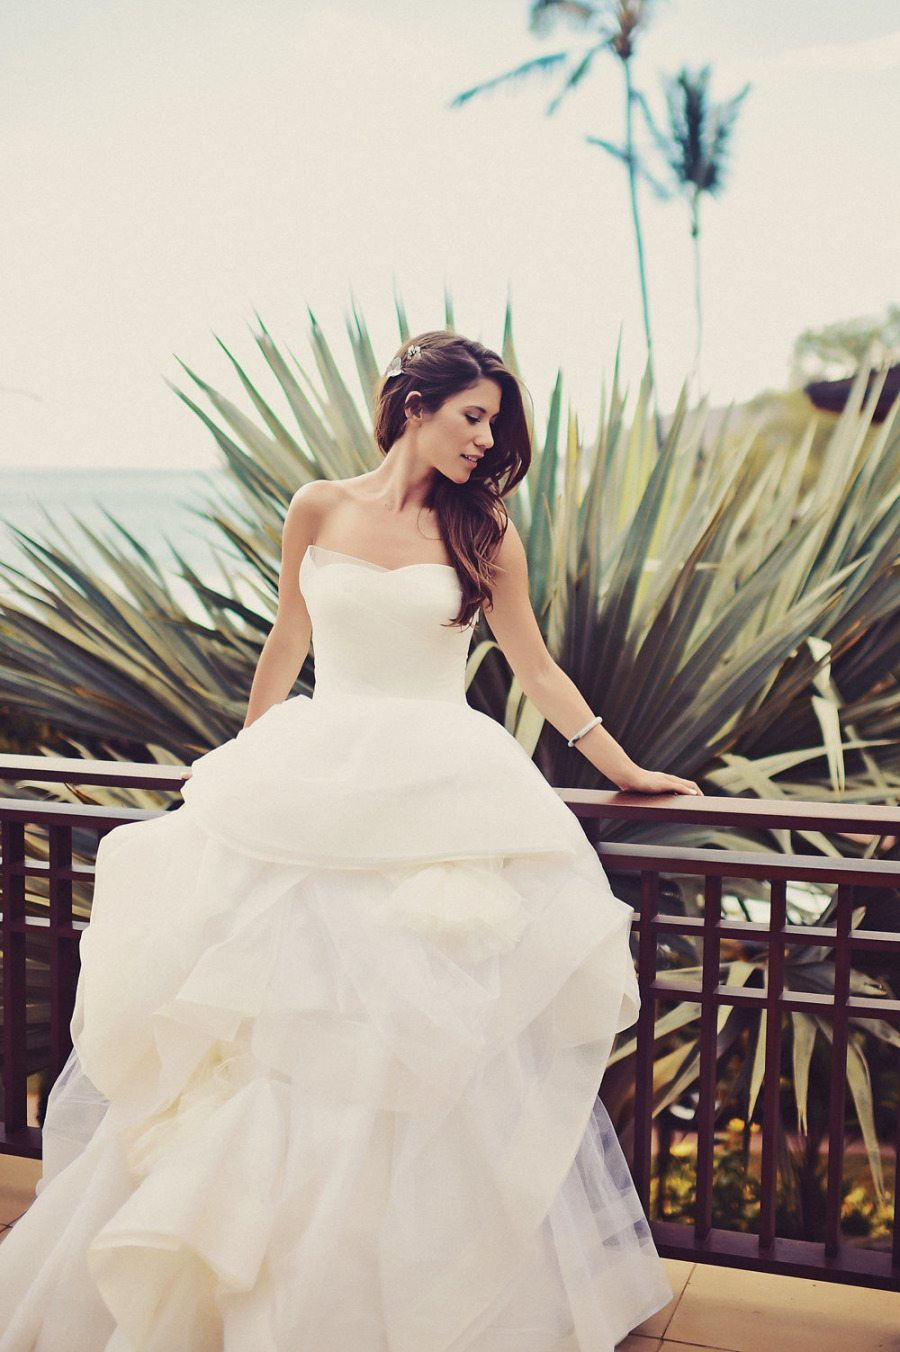 Outdoor Summertime Wedding Ball Gown